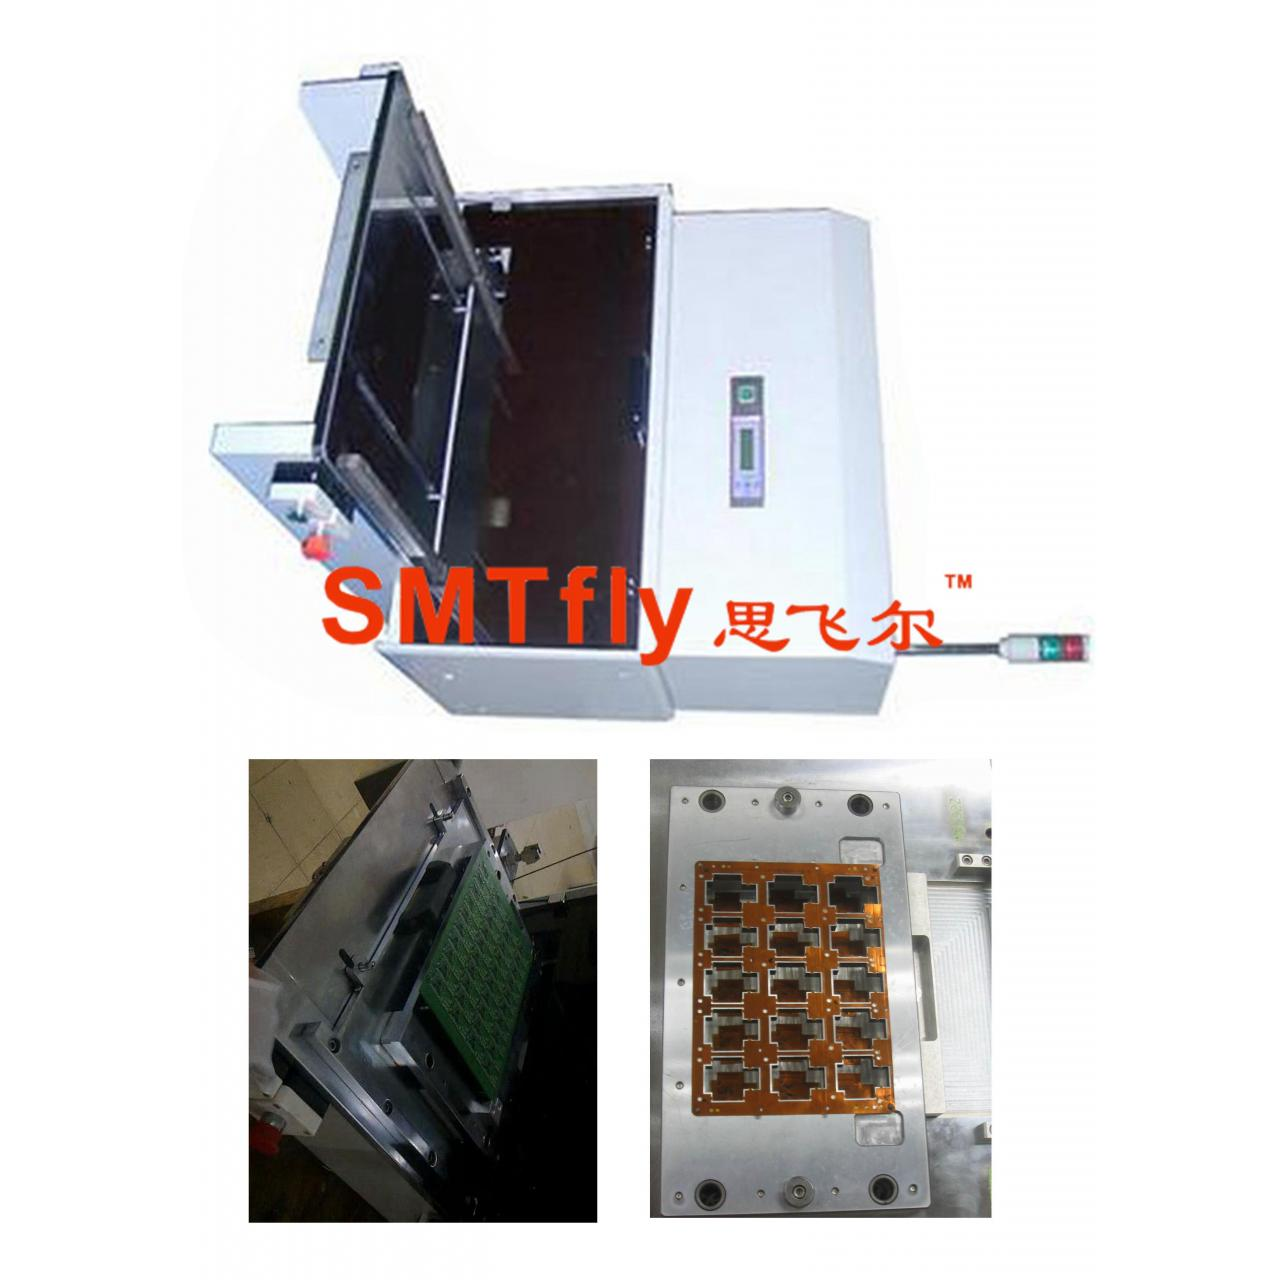 Buy cheap fpc tooling,SMTfly-PL from wholesalers